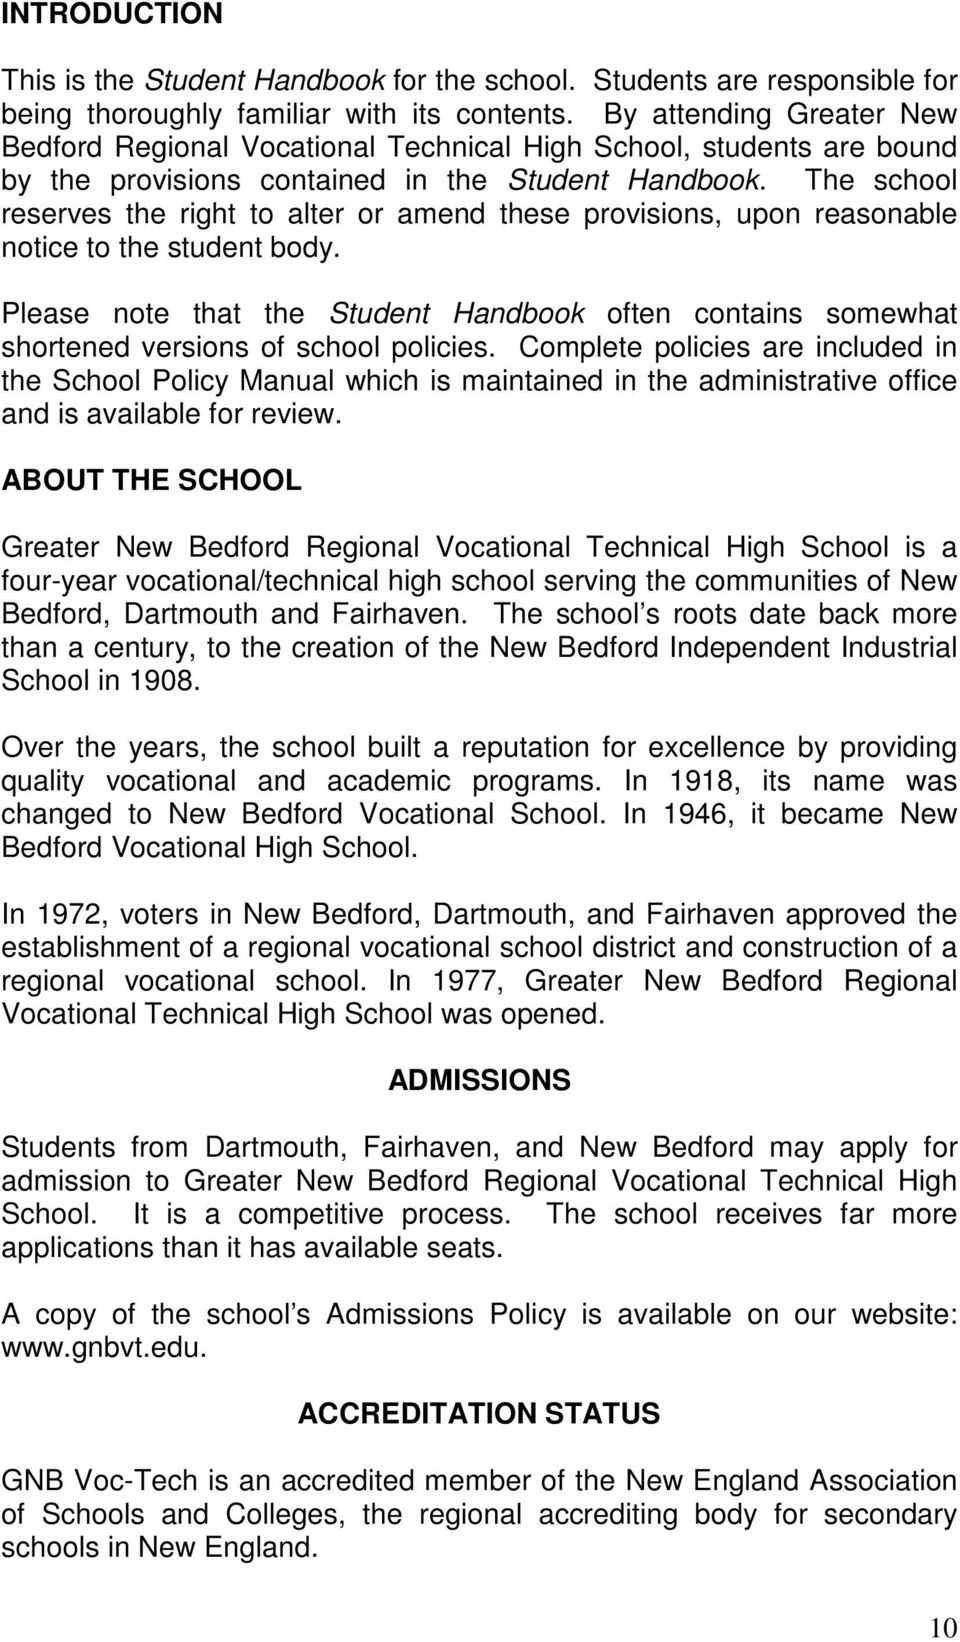 greater new bedford regional vocational technical high school the school reserves the right to alter or amend these provisions upon reasonable notice to